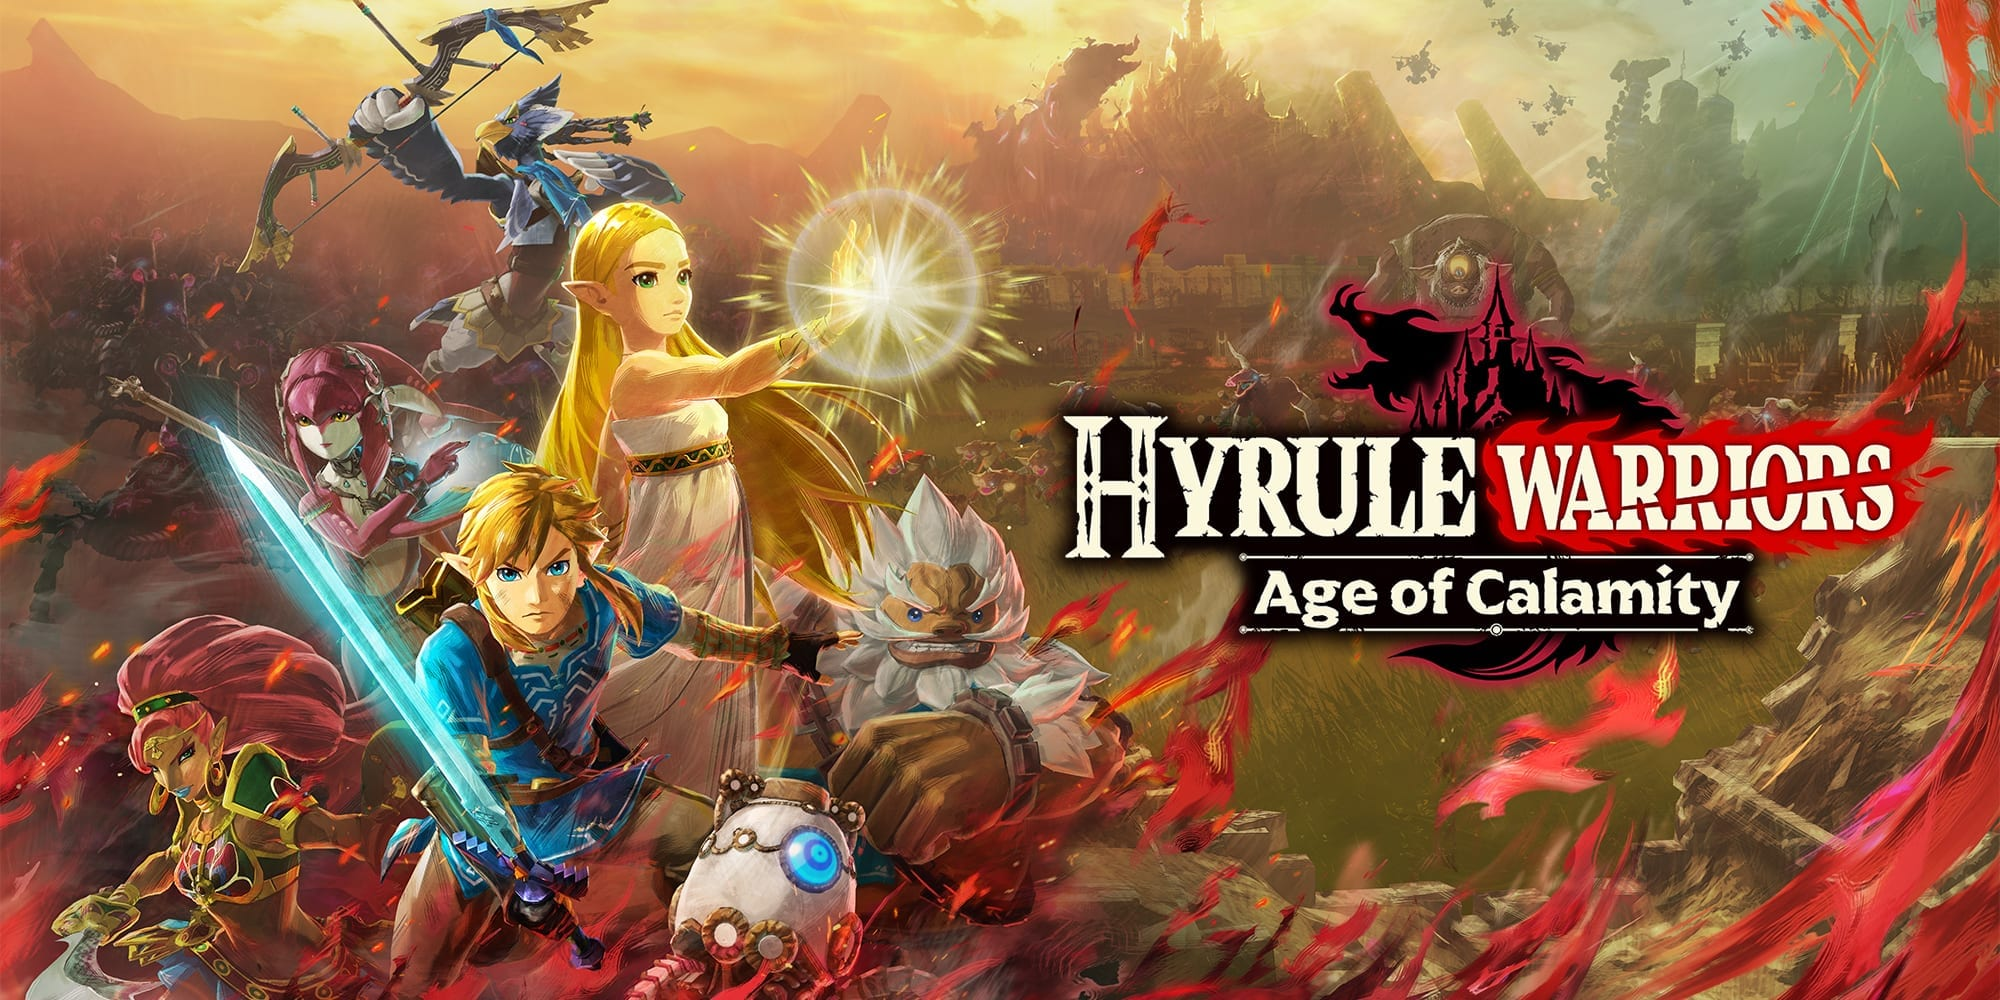 Hyrule Warriors: Age of Calamity Playable Demo Could Be Coming Soon